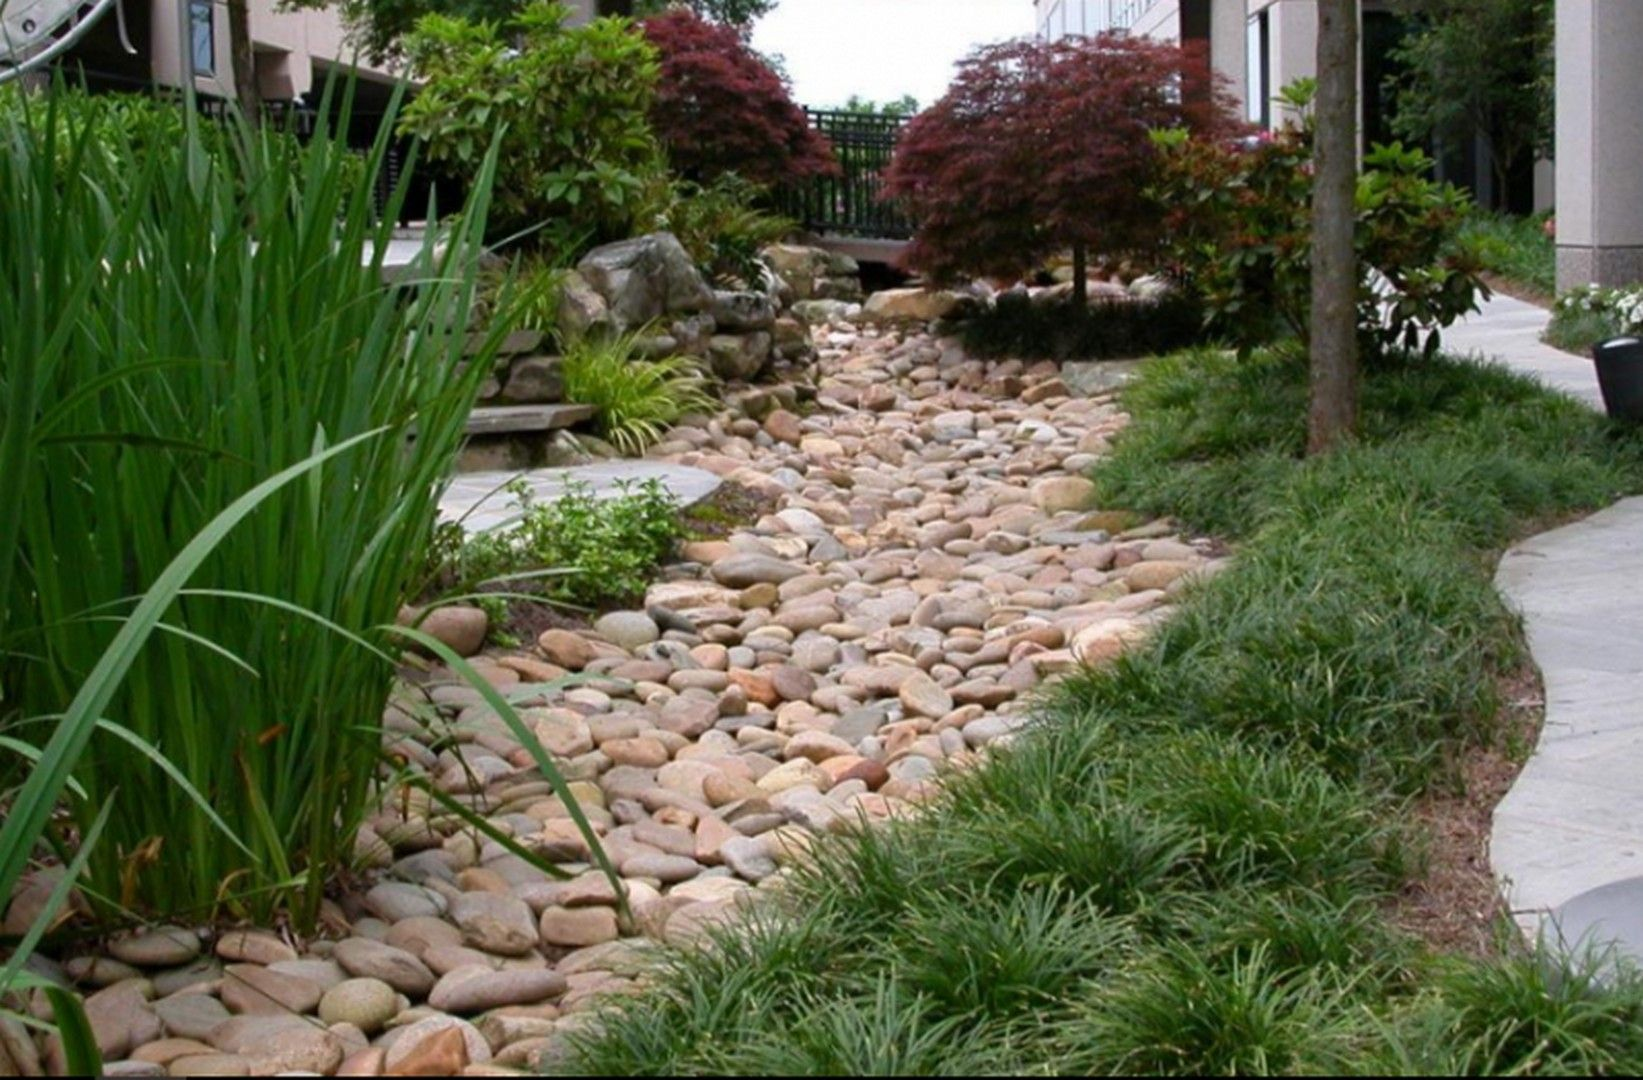 33 Landscaping Garden Ideas with River Rock #riverrocklandscaping stunning 33 Landscaping Garden Ideas with River Rock #riverrocklandscaping